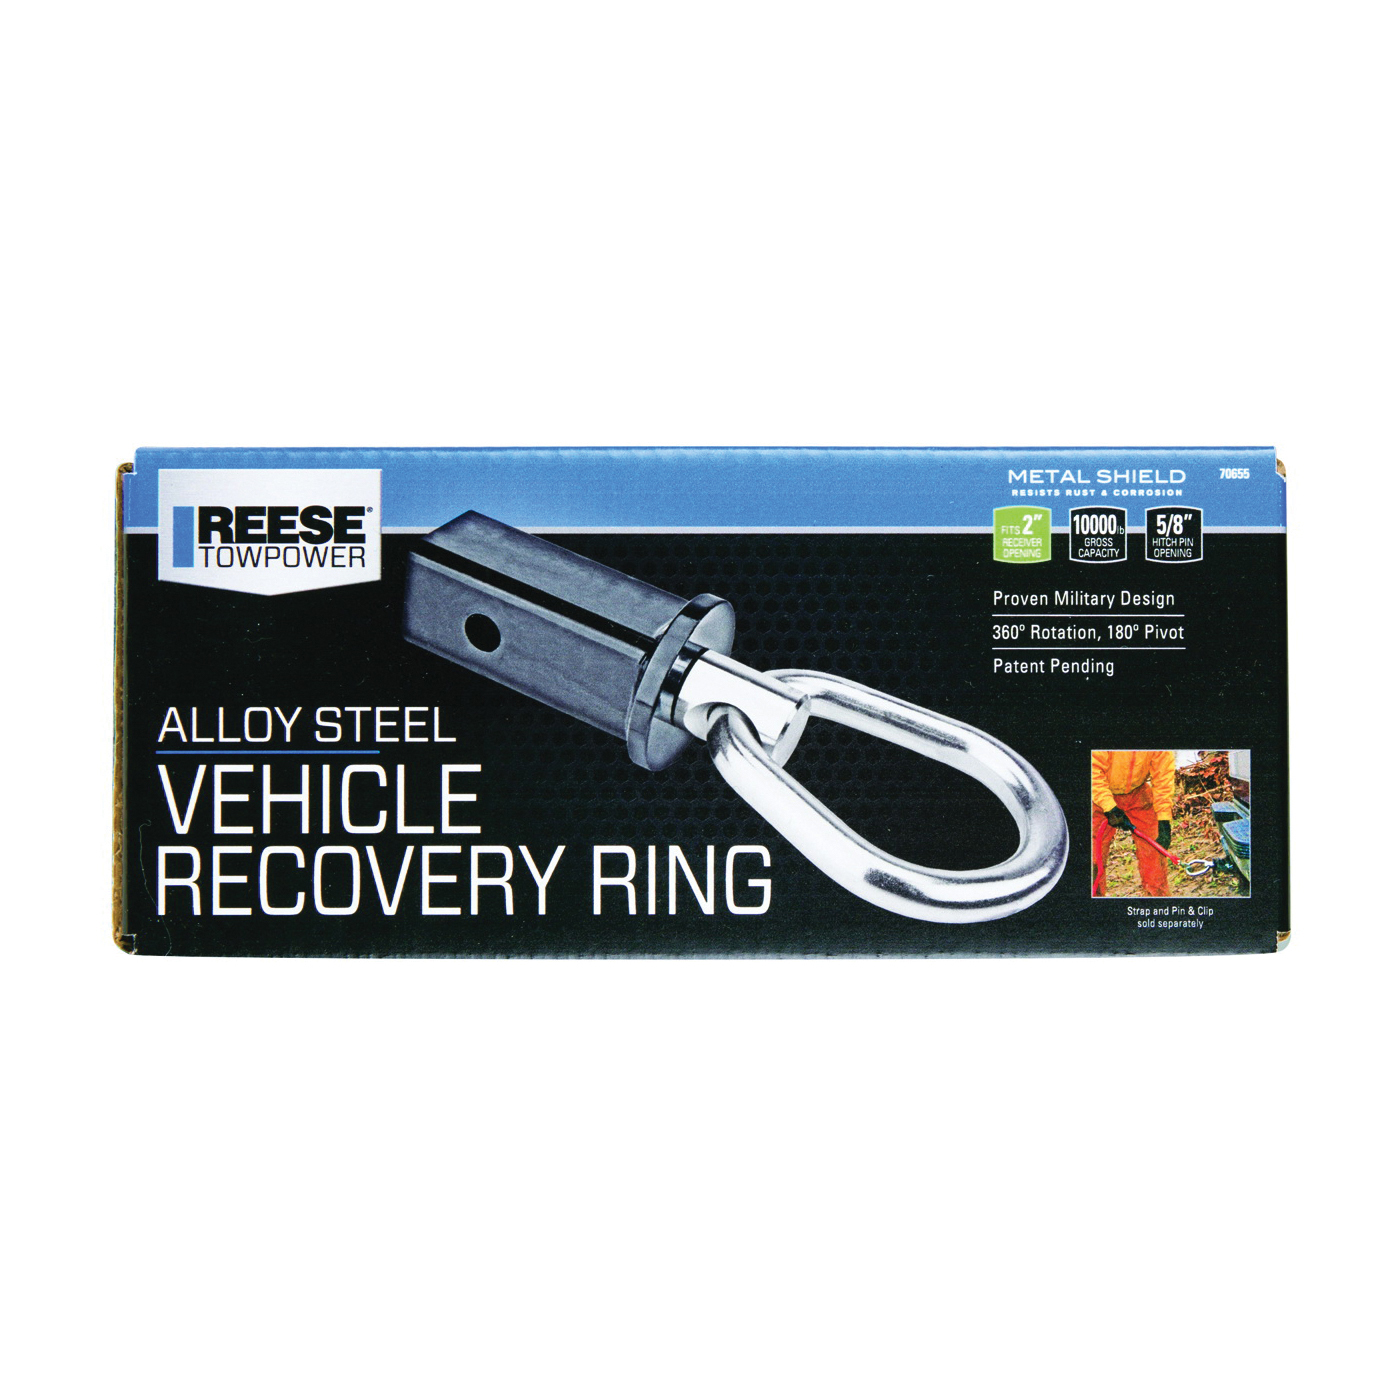 REESE TOWPOWER 70655